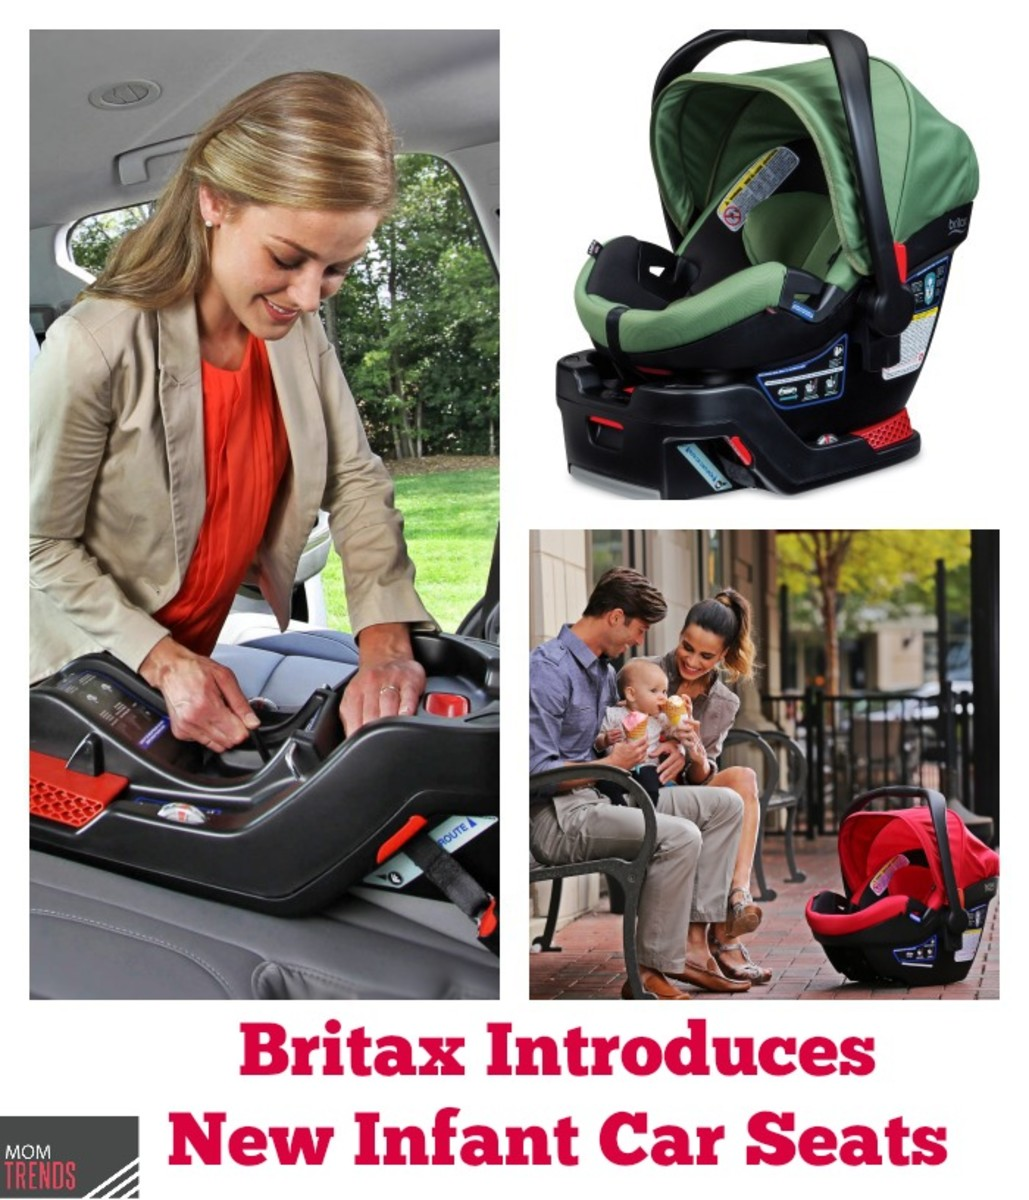 Britax Introduces New Infant Car Seats